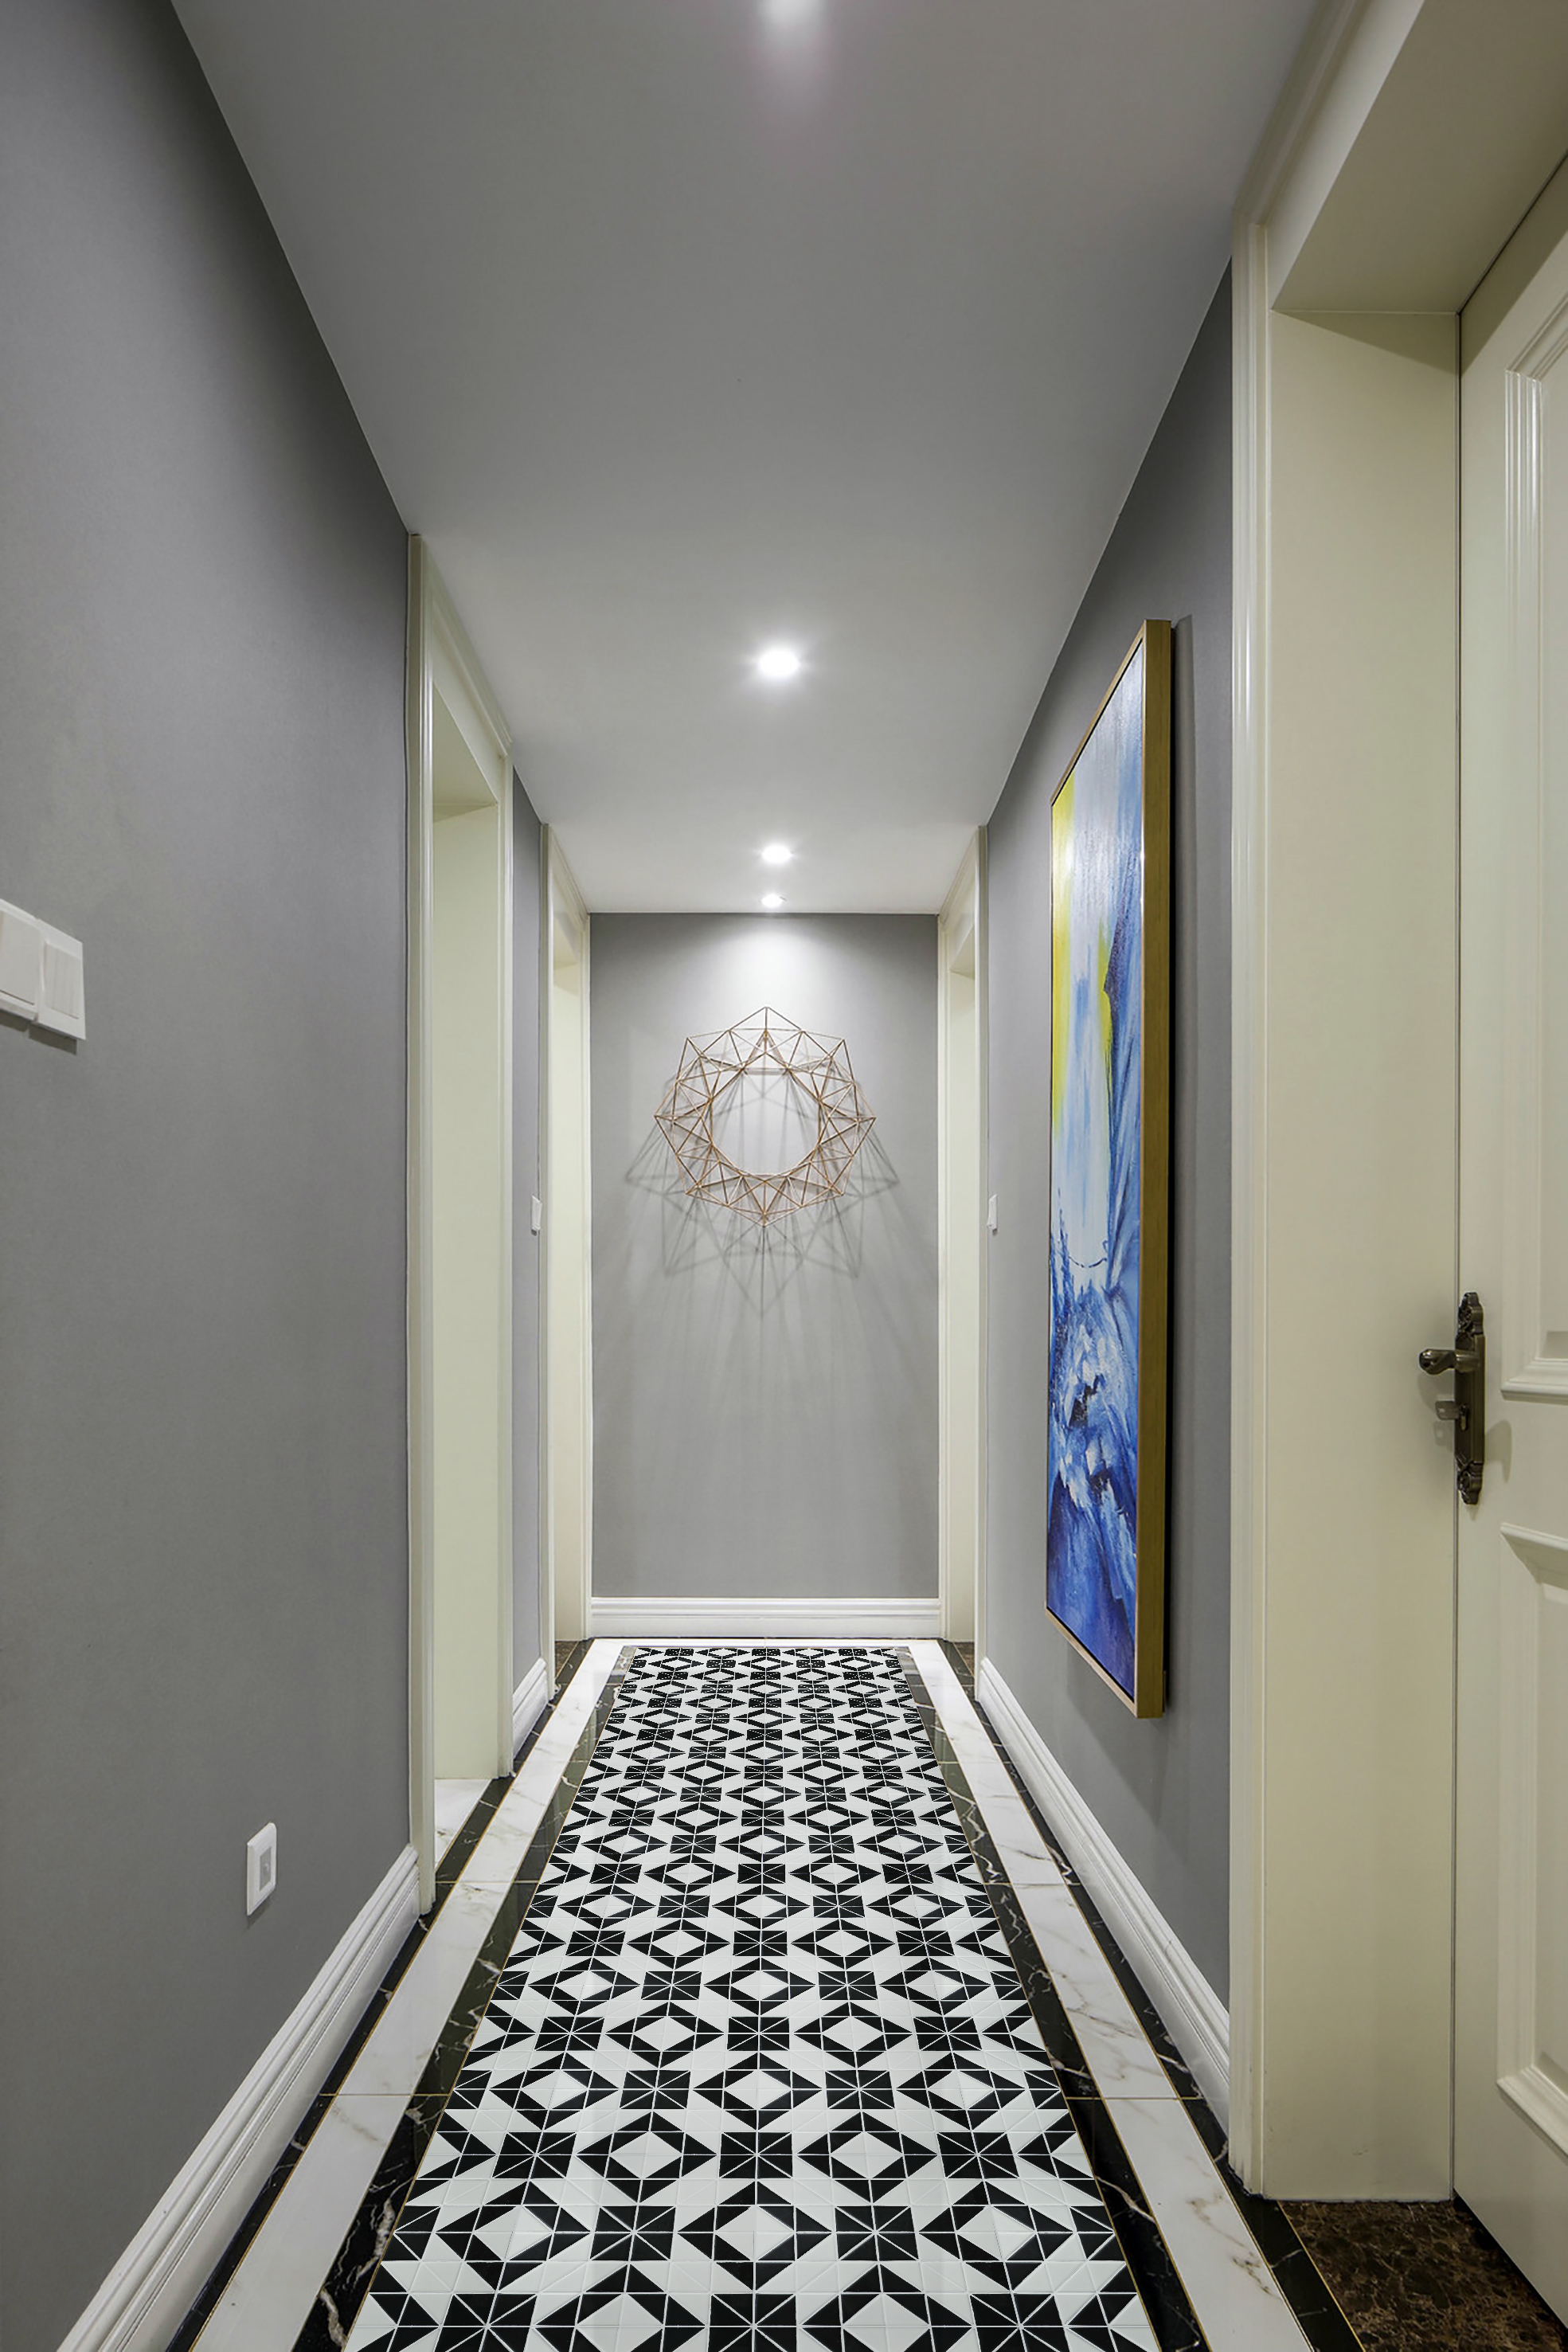 Artistic 2 Black White Triangle Tile Porcelain Floor